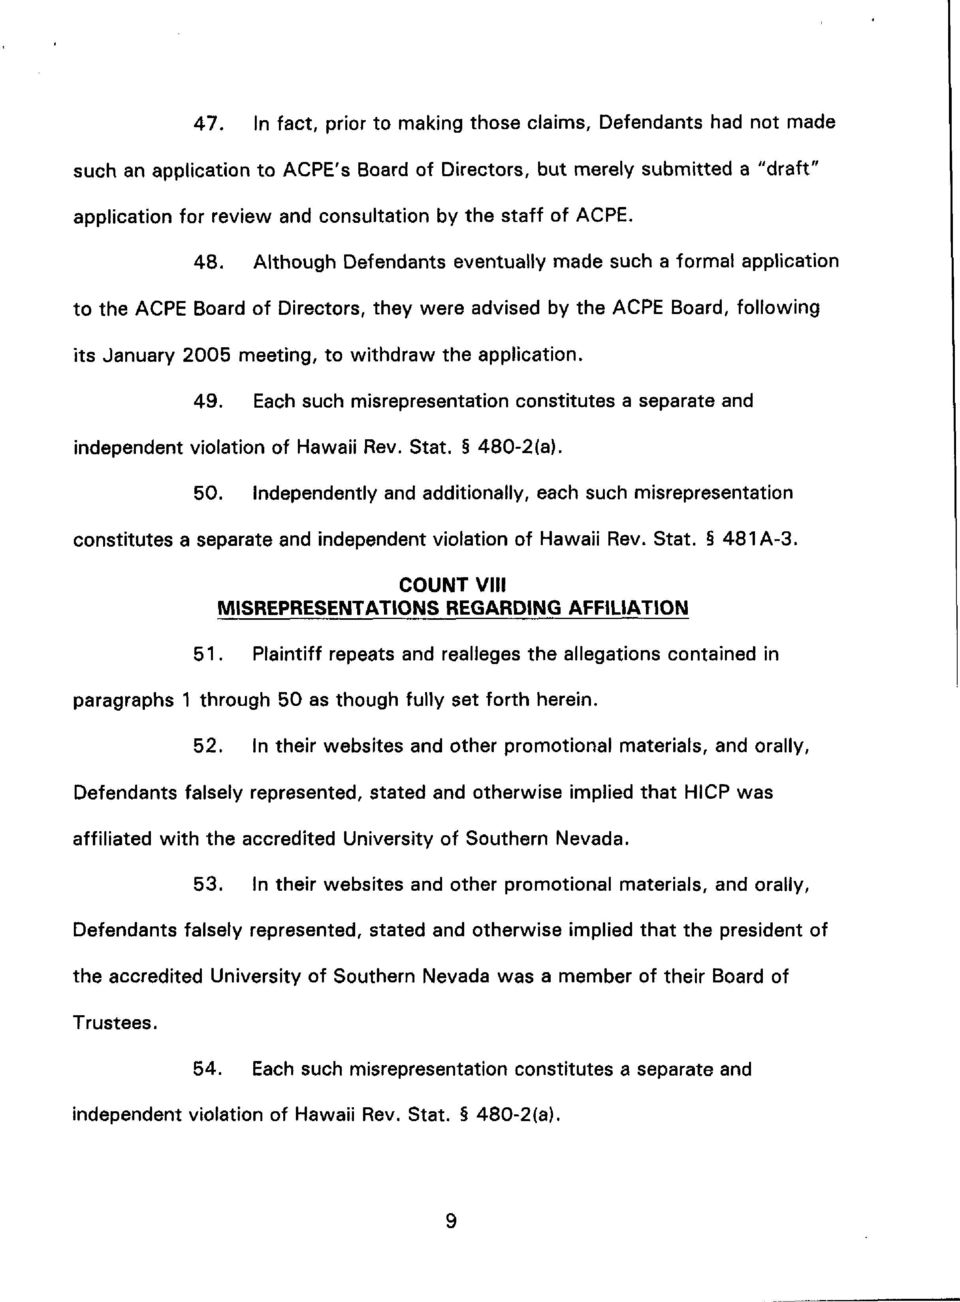 Although Defendants eventually made such a formal application to the ACPE Board of Directors, they were advised by the ACPE Board, following its January 2005 meeting, to withdraw the application. 49.